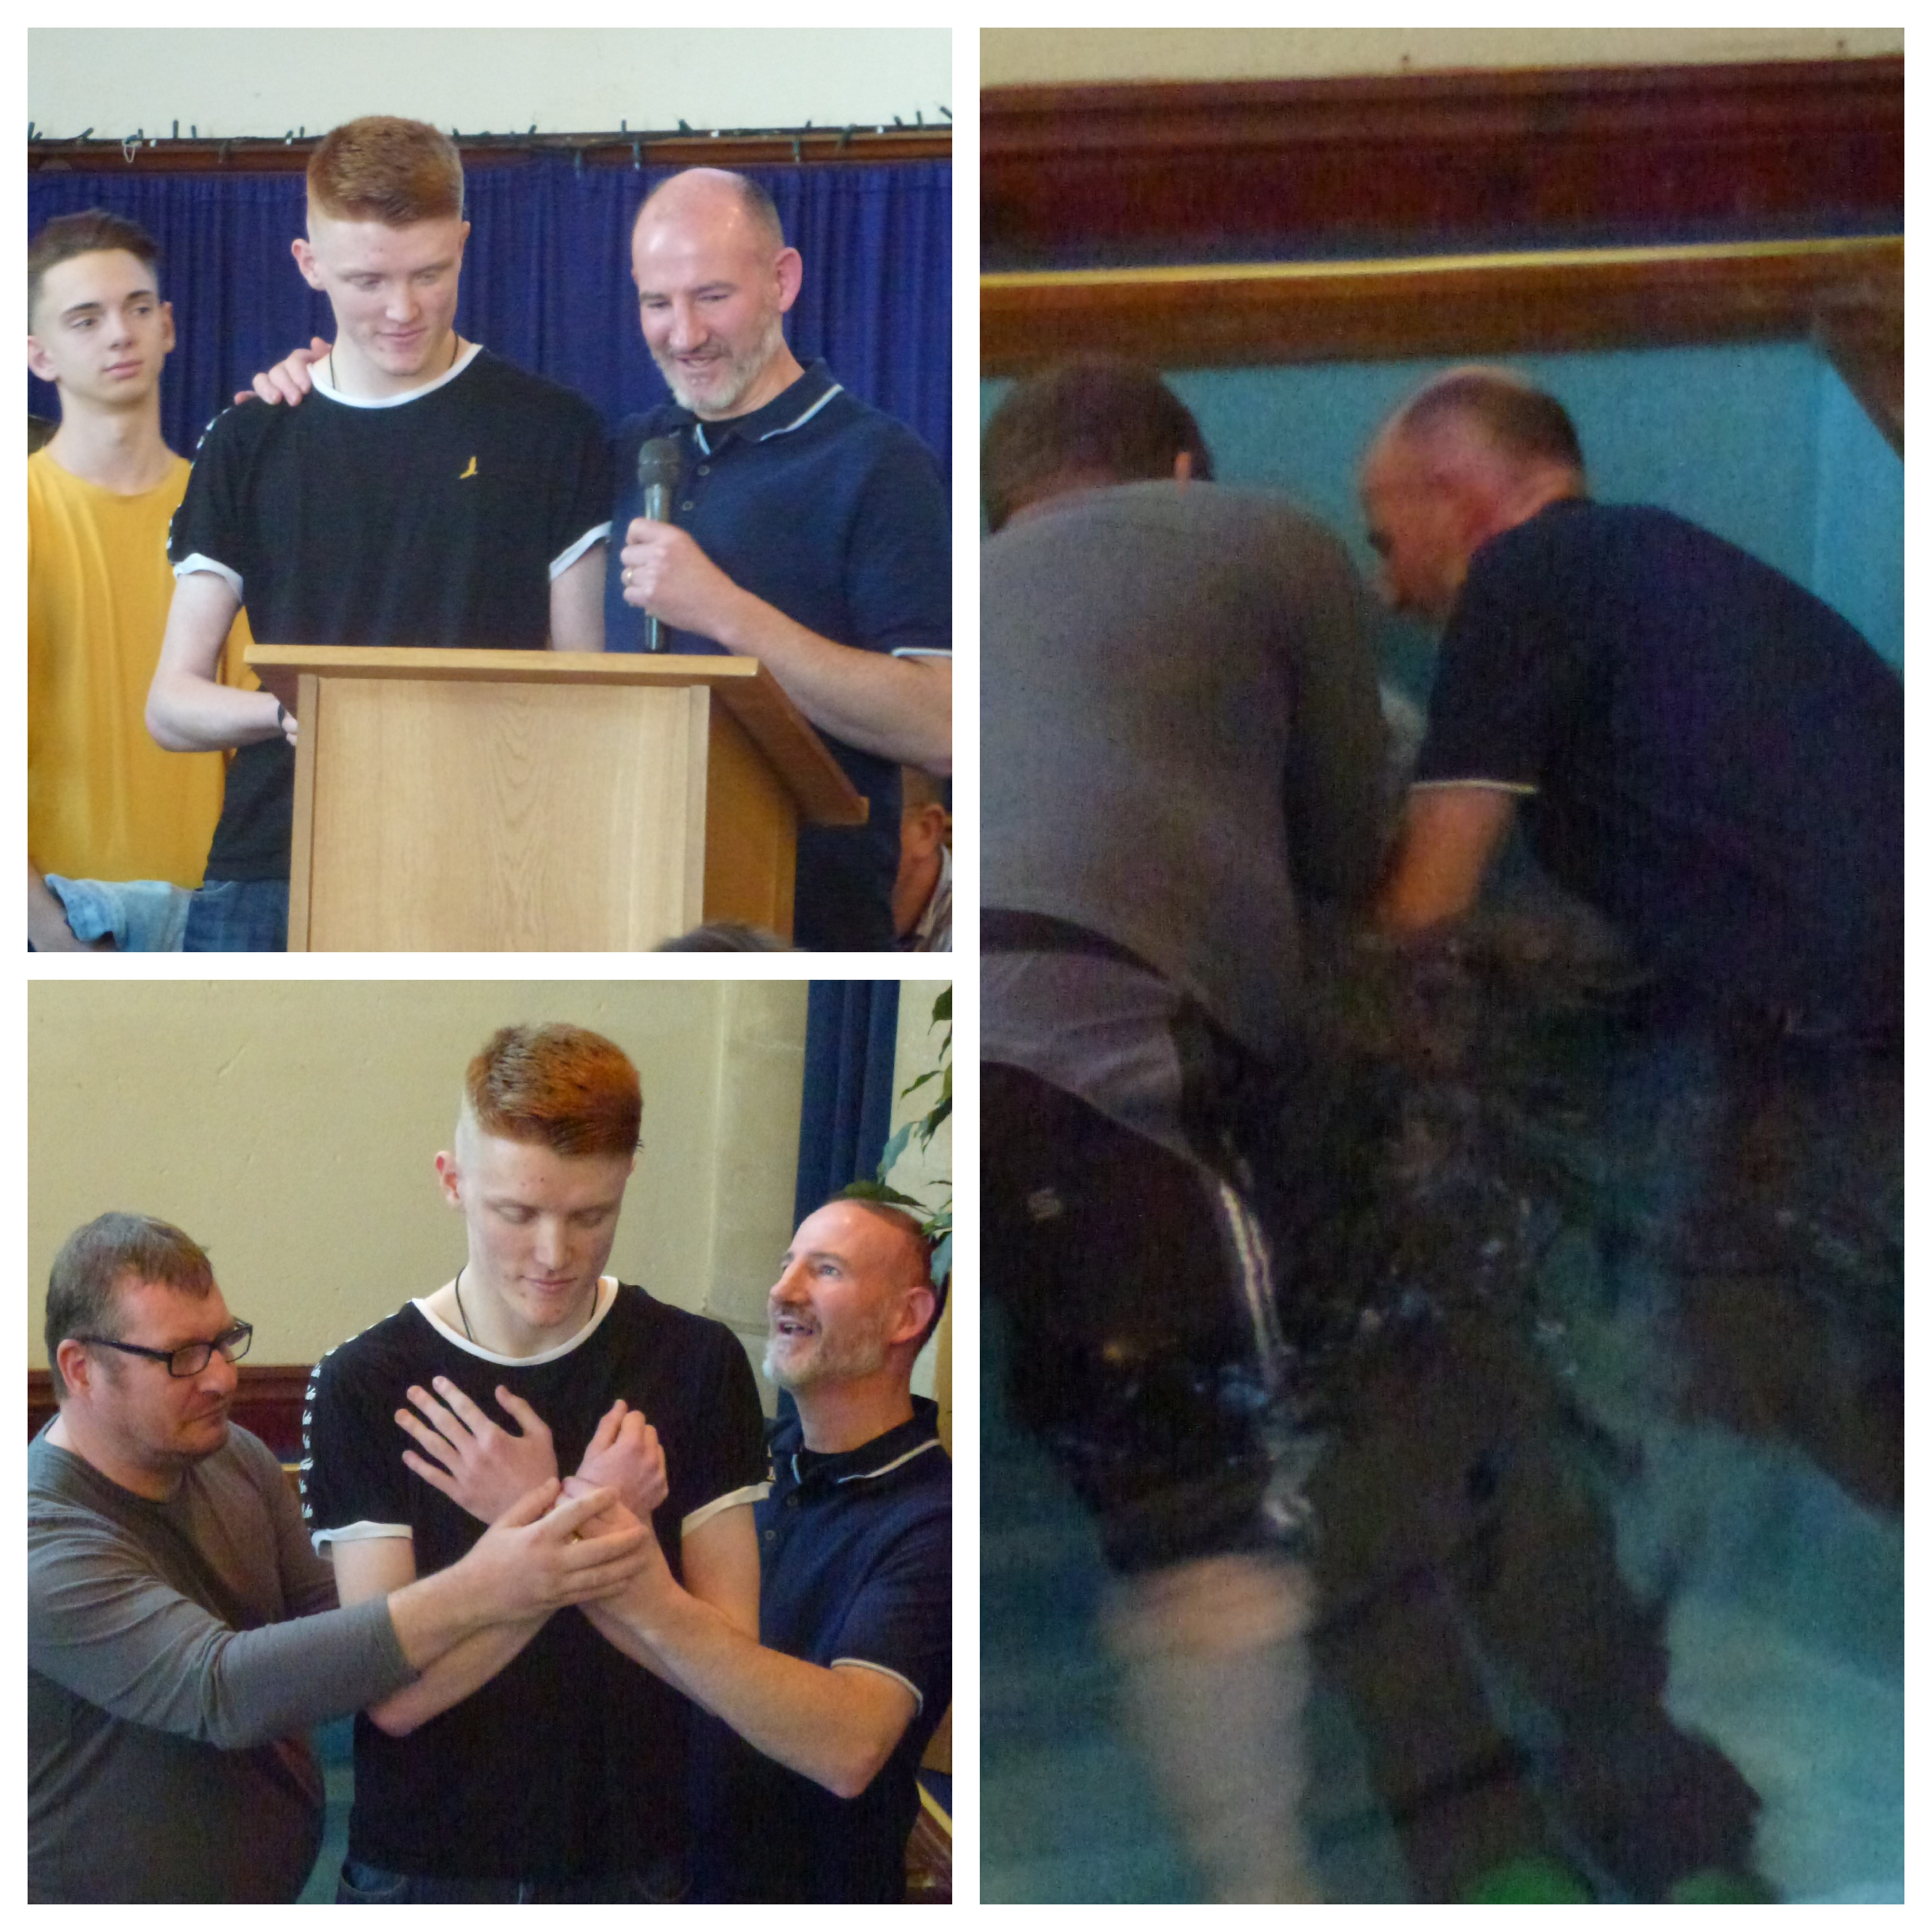 James being baptised on 24th March.